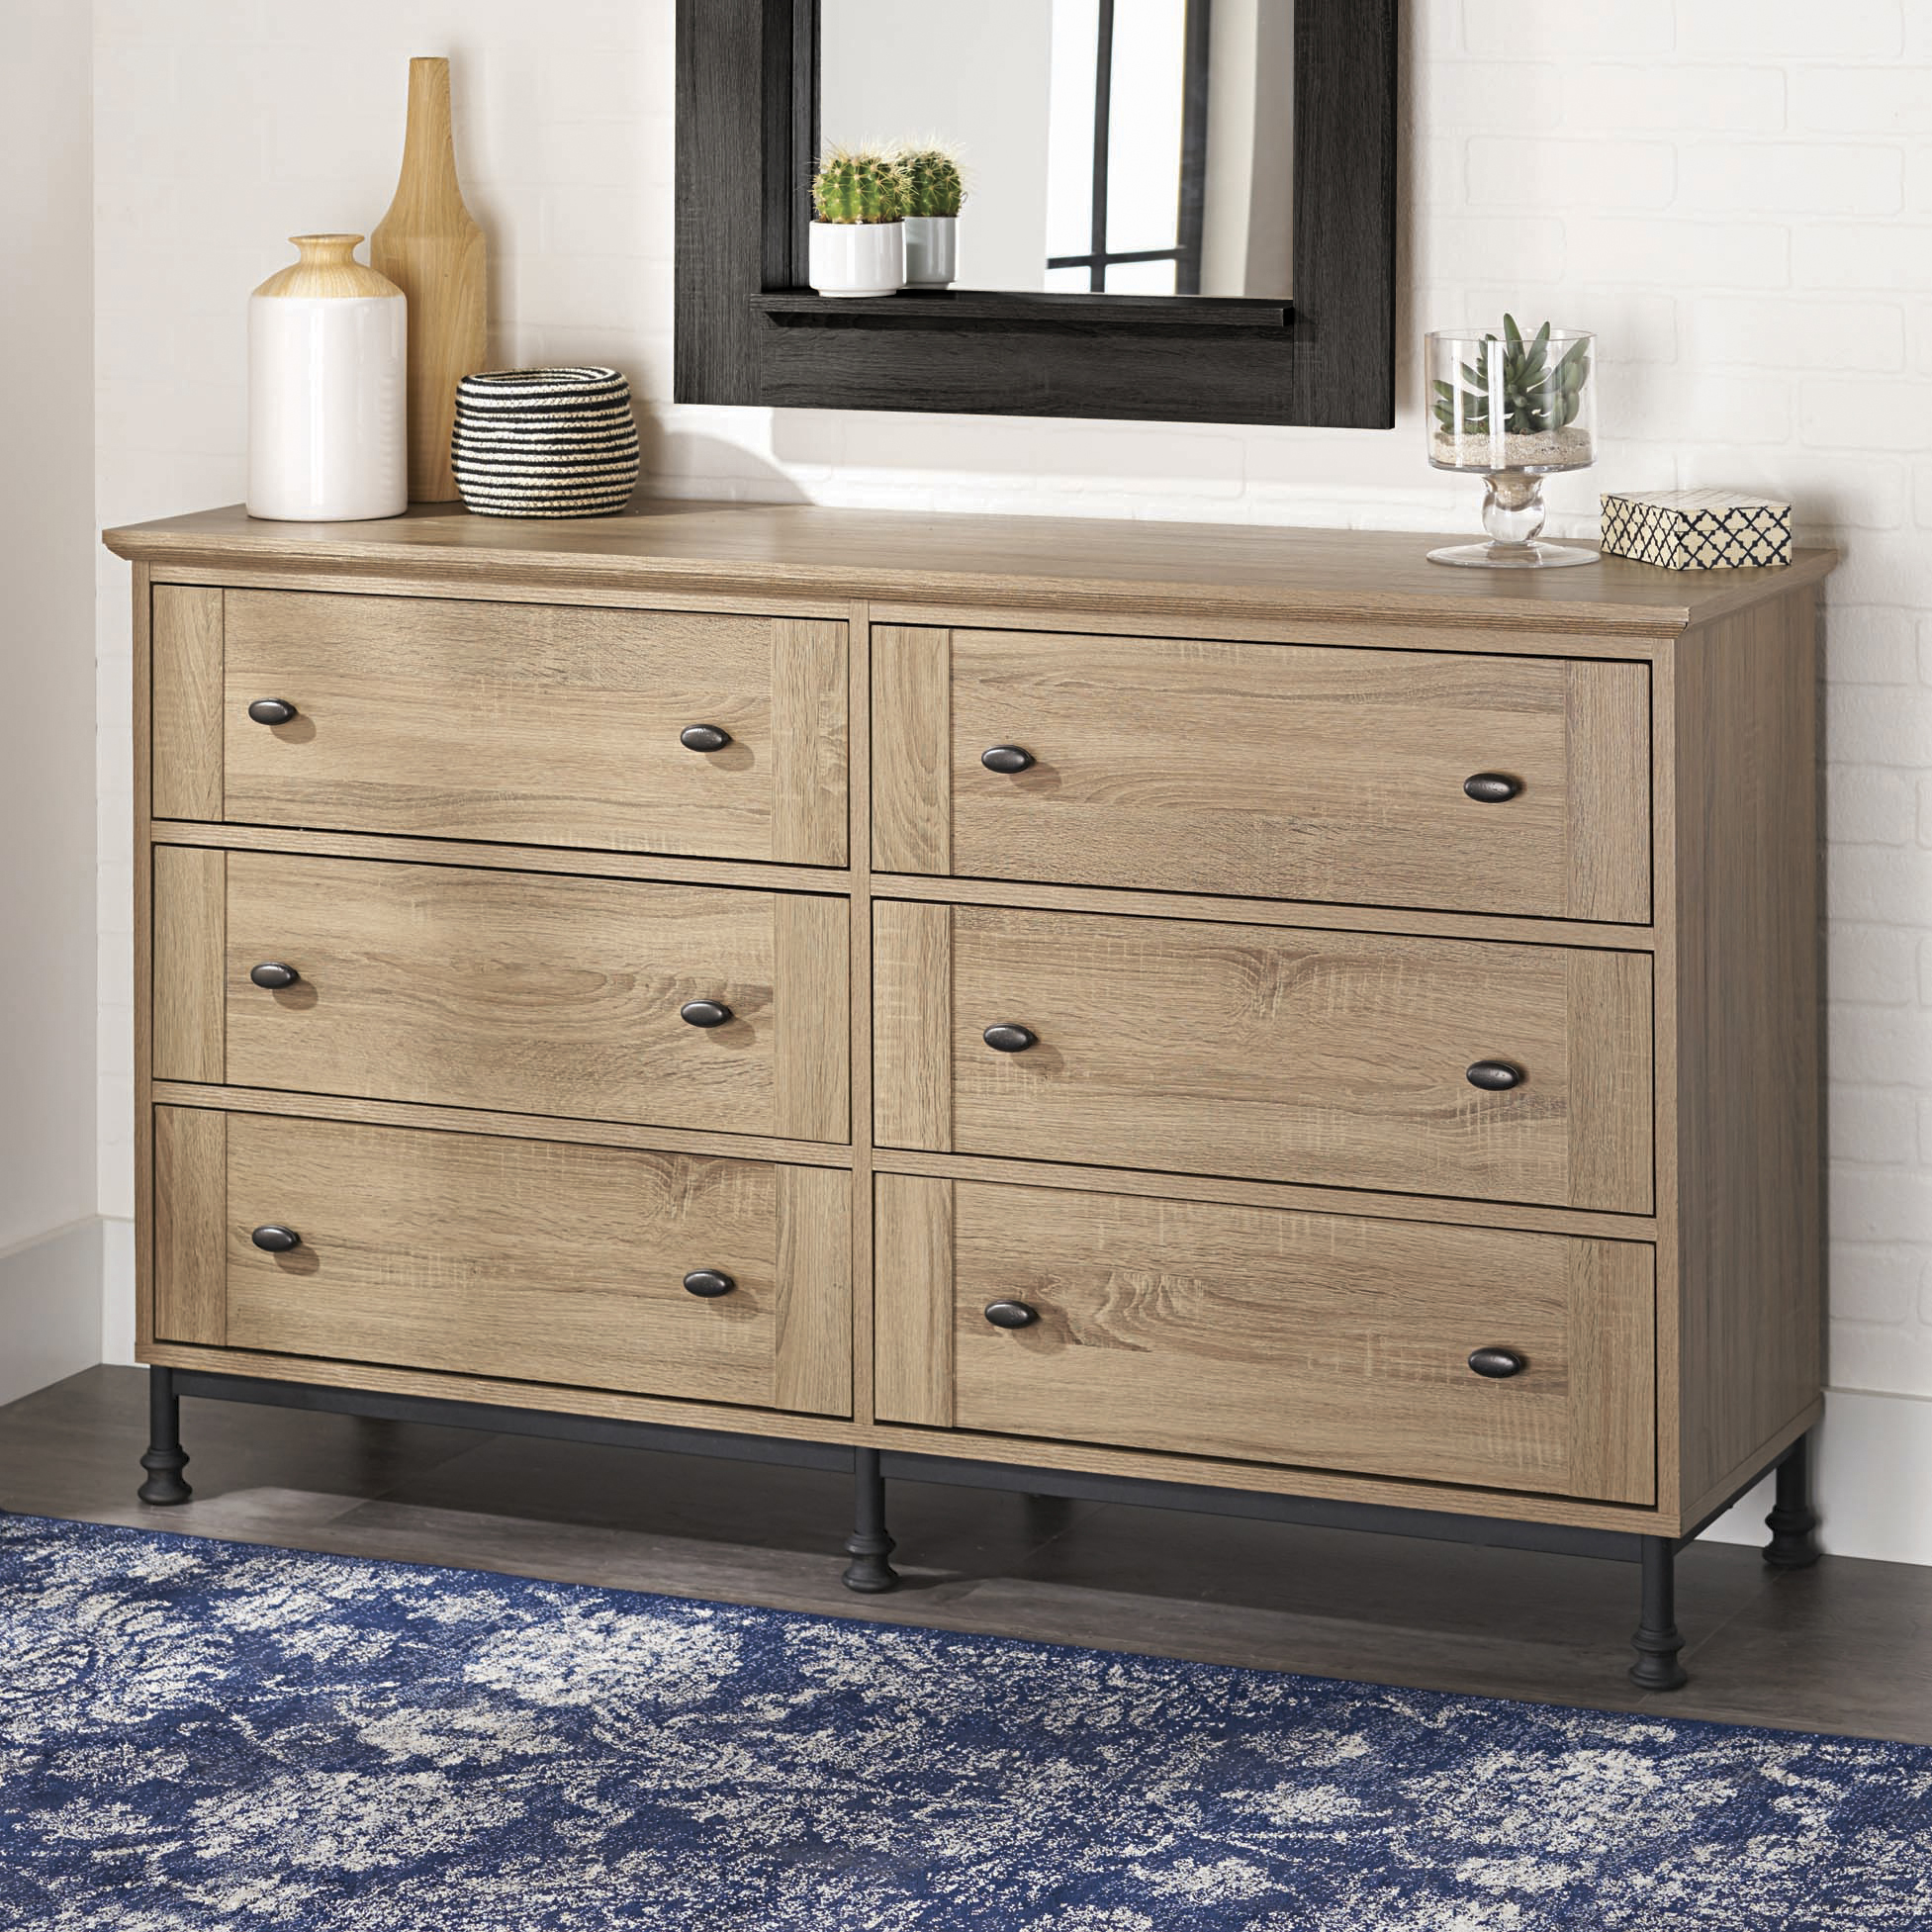 Better Homes and Gardens River Crest 6-Drawer Dresser, Scenic Oak Finish by Sauder Woodworking